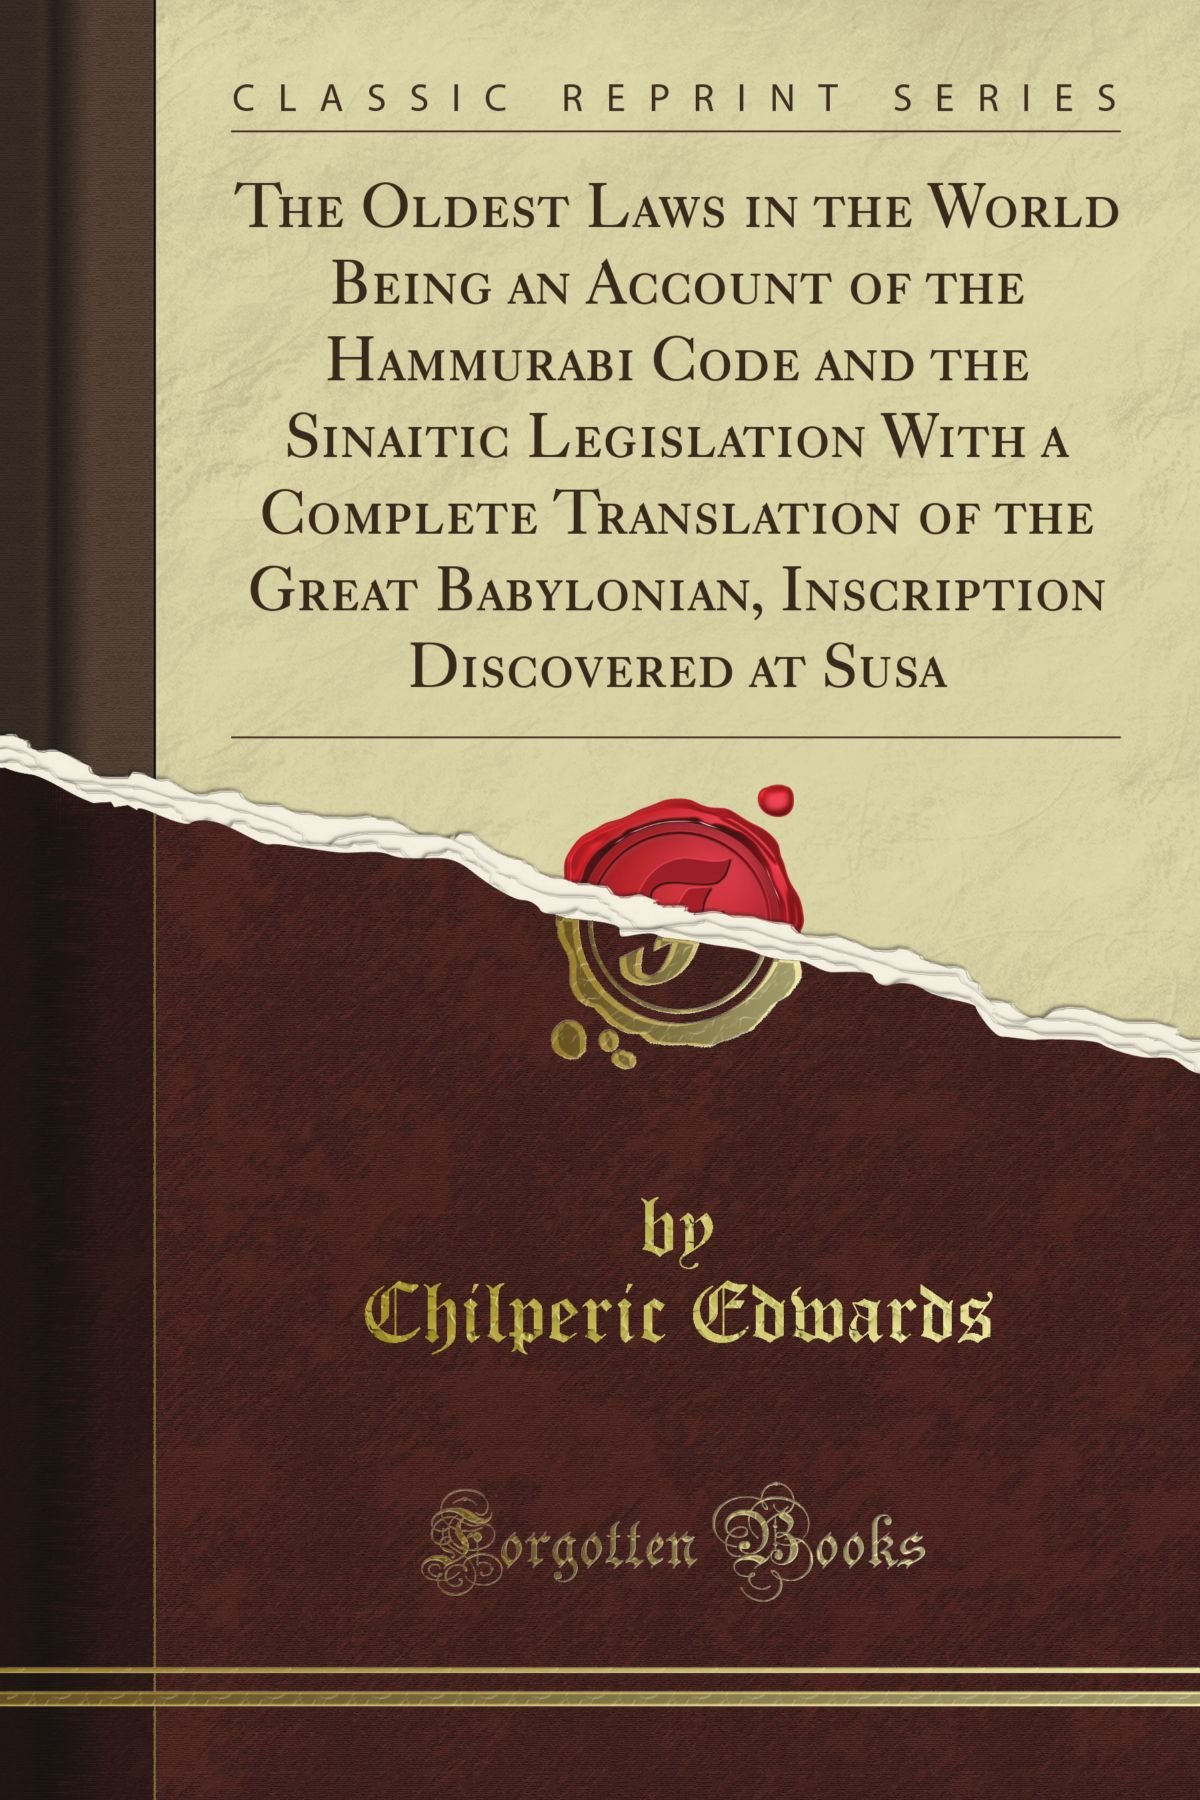 Download The Oldest Laws in the World Being an Account of the Hammurabi Code and the Sinaitic Legislation With a Complete Translation of the Great Babylonian, Inscription Discovered at Susa (Classic Reprint) PDF